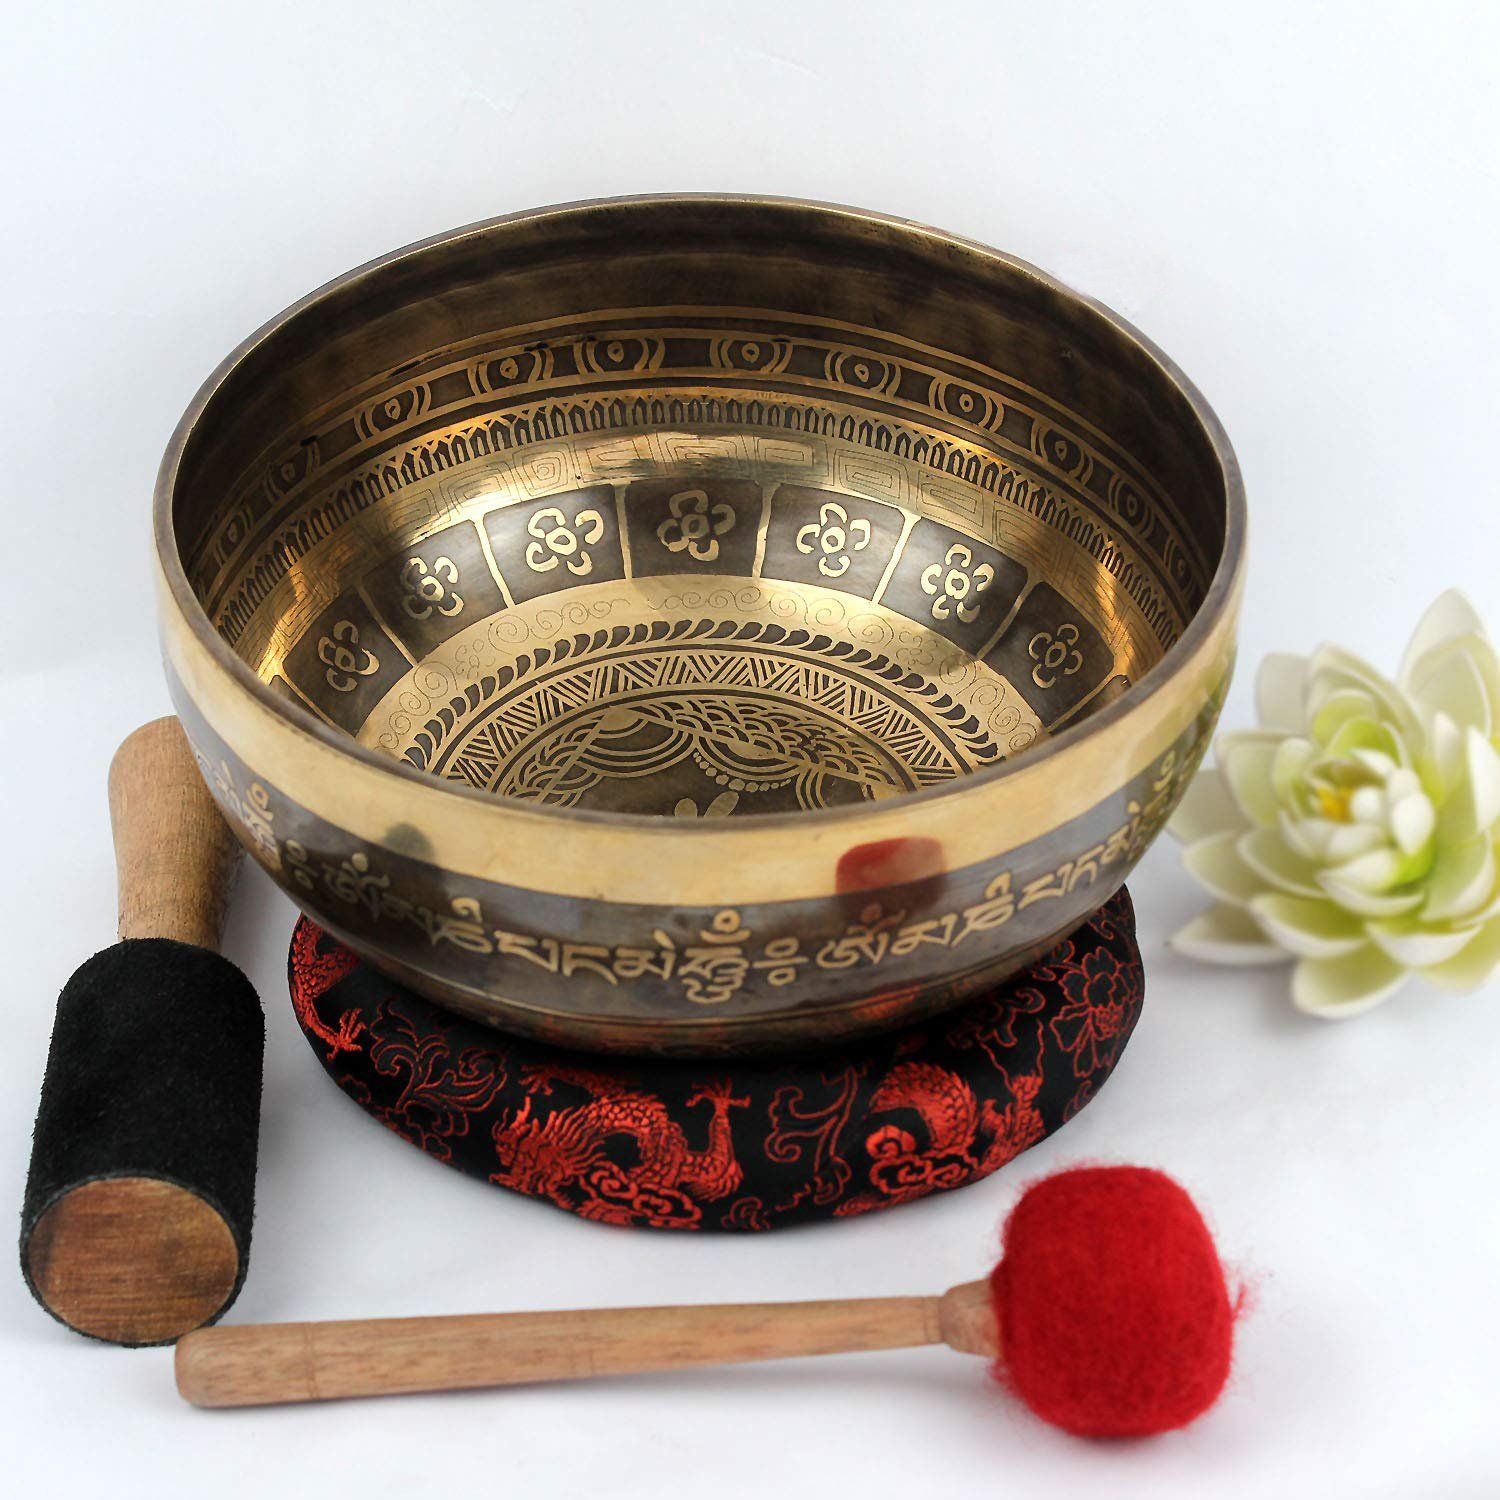 8 Inches Sound Therapy singing bowlSinging bowl from